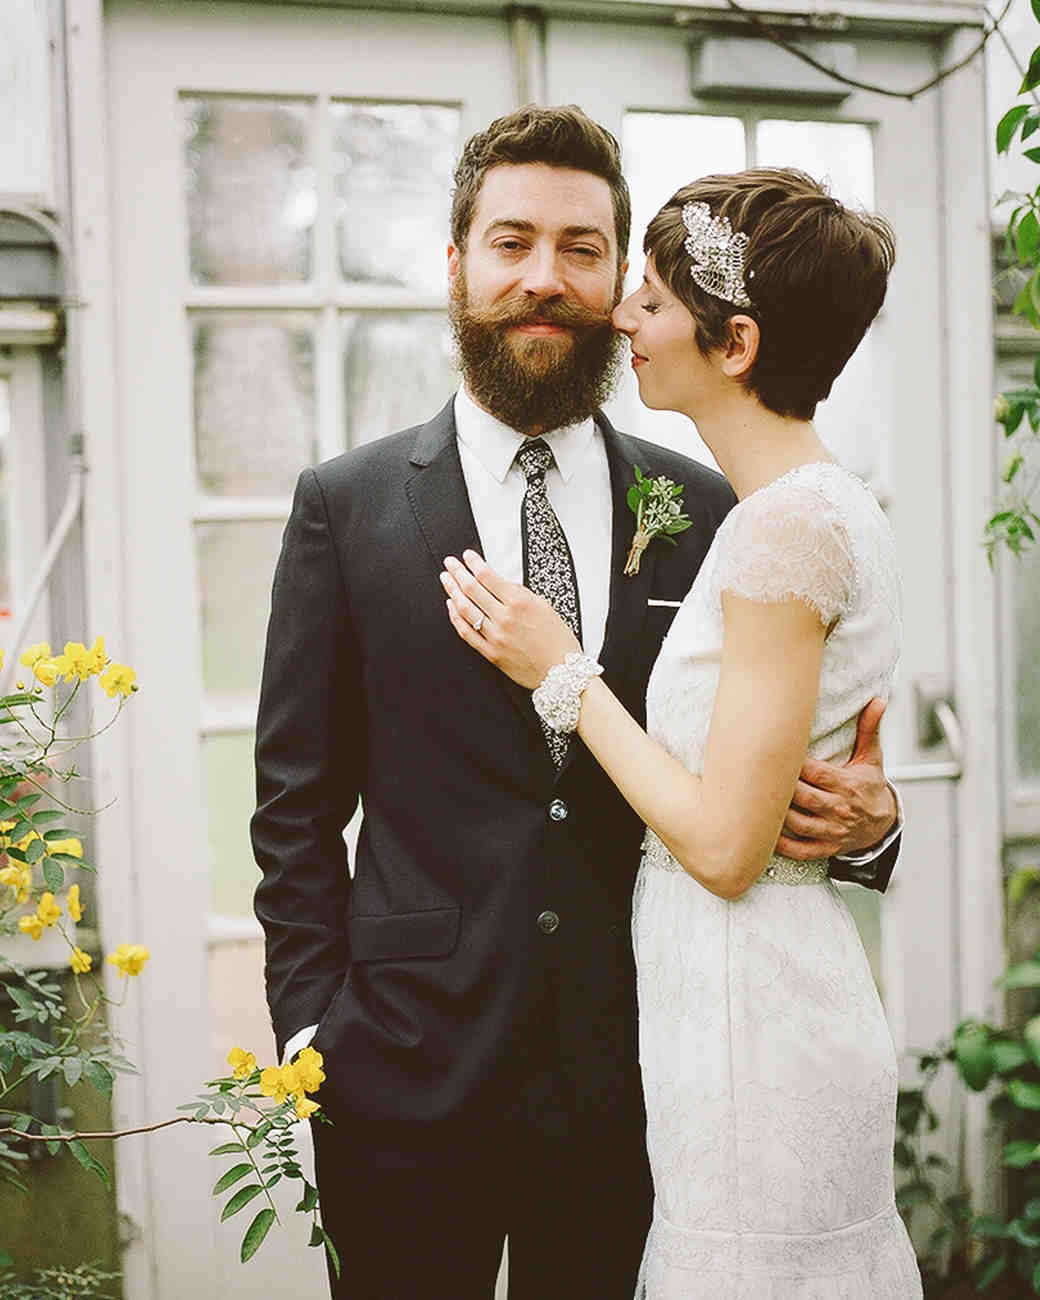 trish-alan-wedding-portrait2-030-s111348-0714.jpg